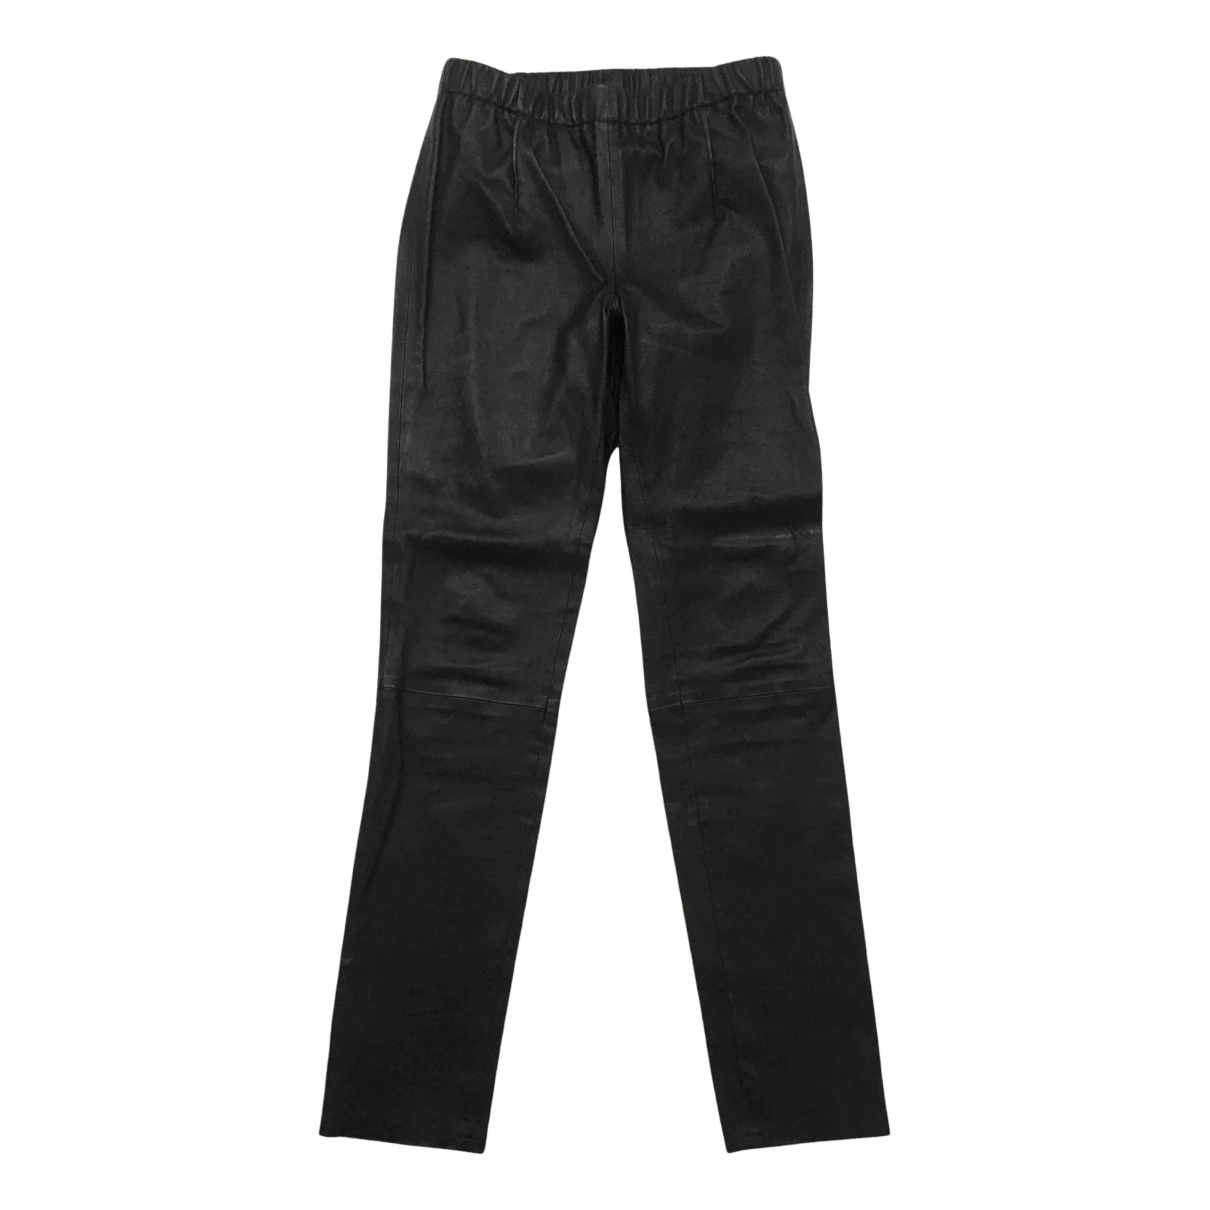 Baukjen \N Black Leather Trousers for Women 12 UK